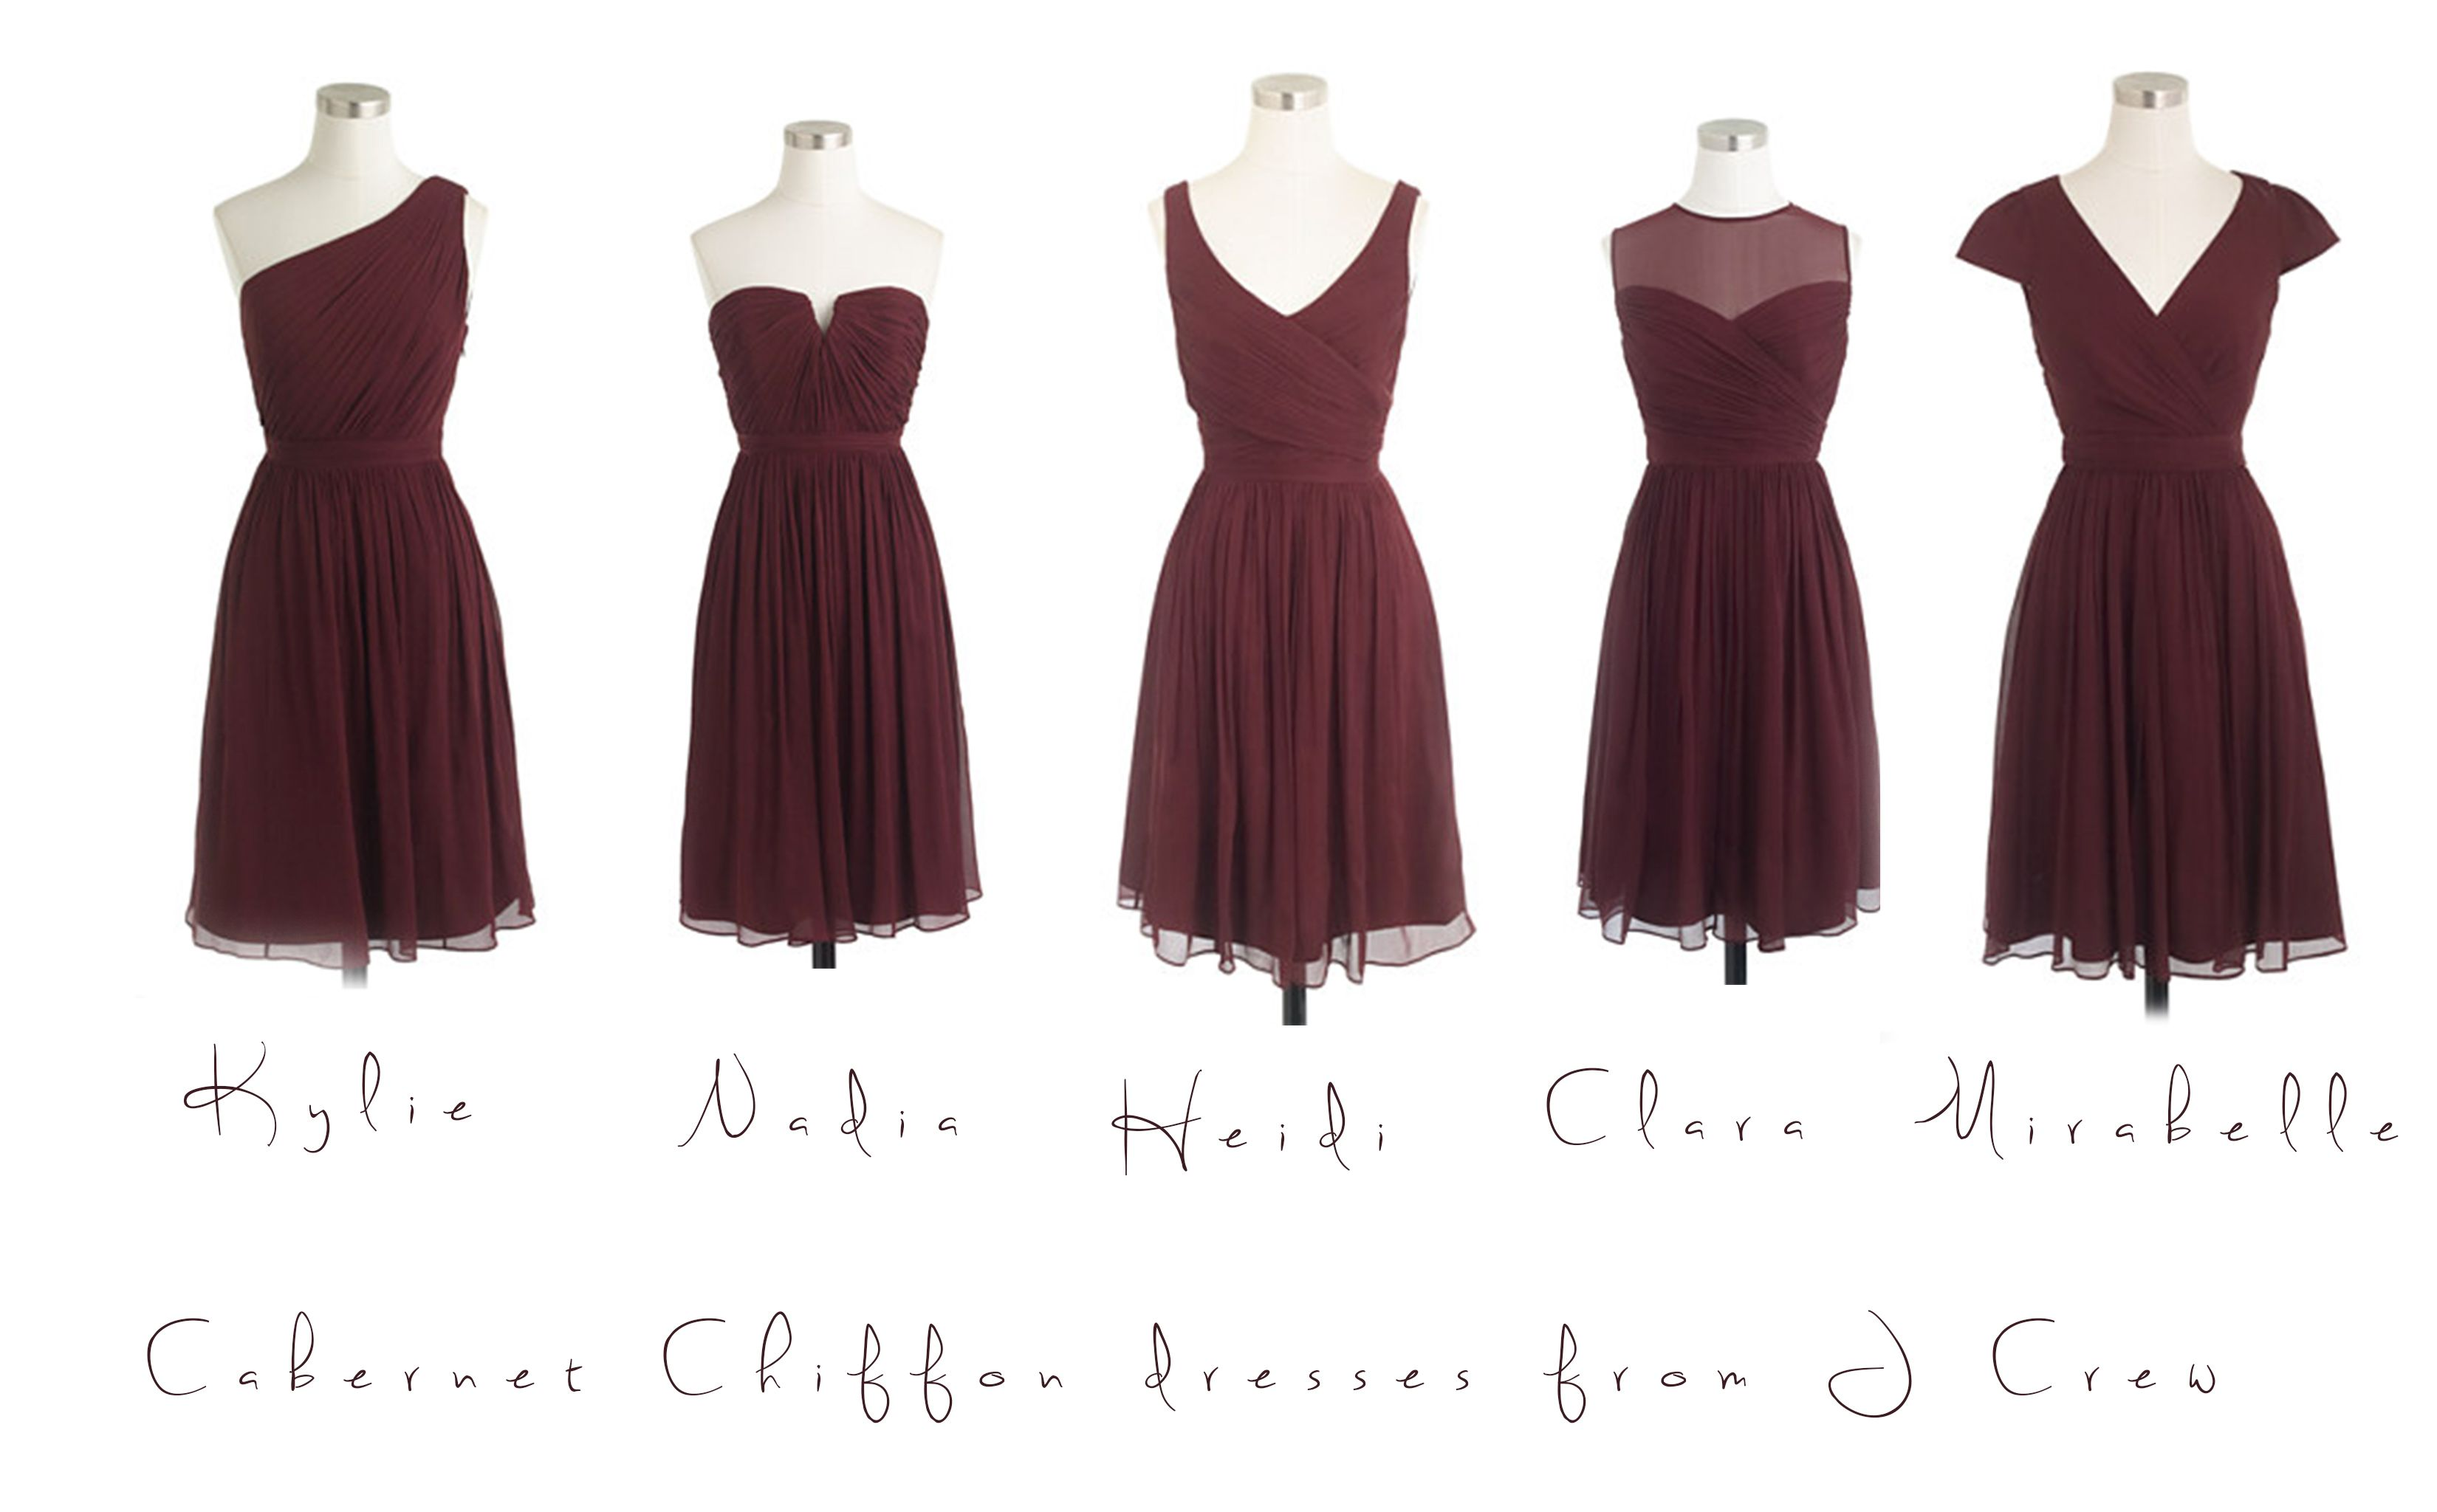 Really love these cabernet chiffon bridesmaids dresses from j crew really love these cabernet chiffon bridesmaids dresses from j crew love the mismatched styles ombrellifo Images